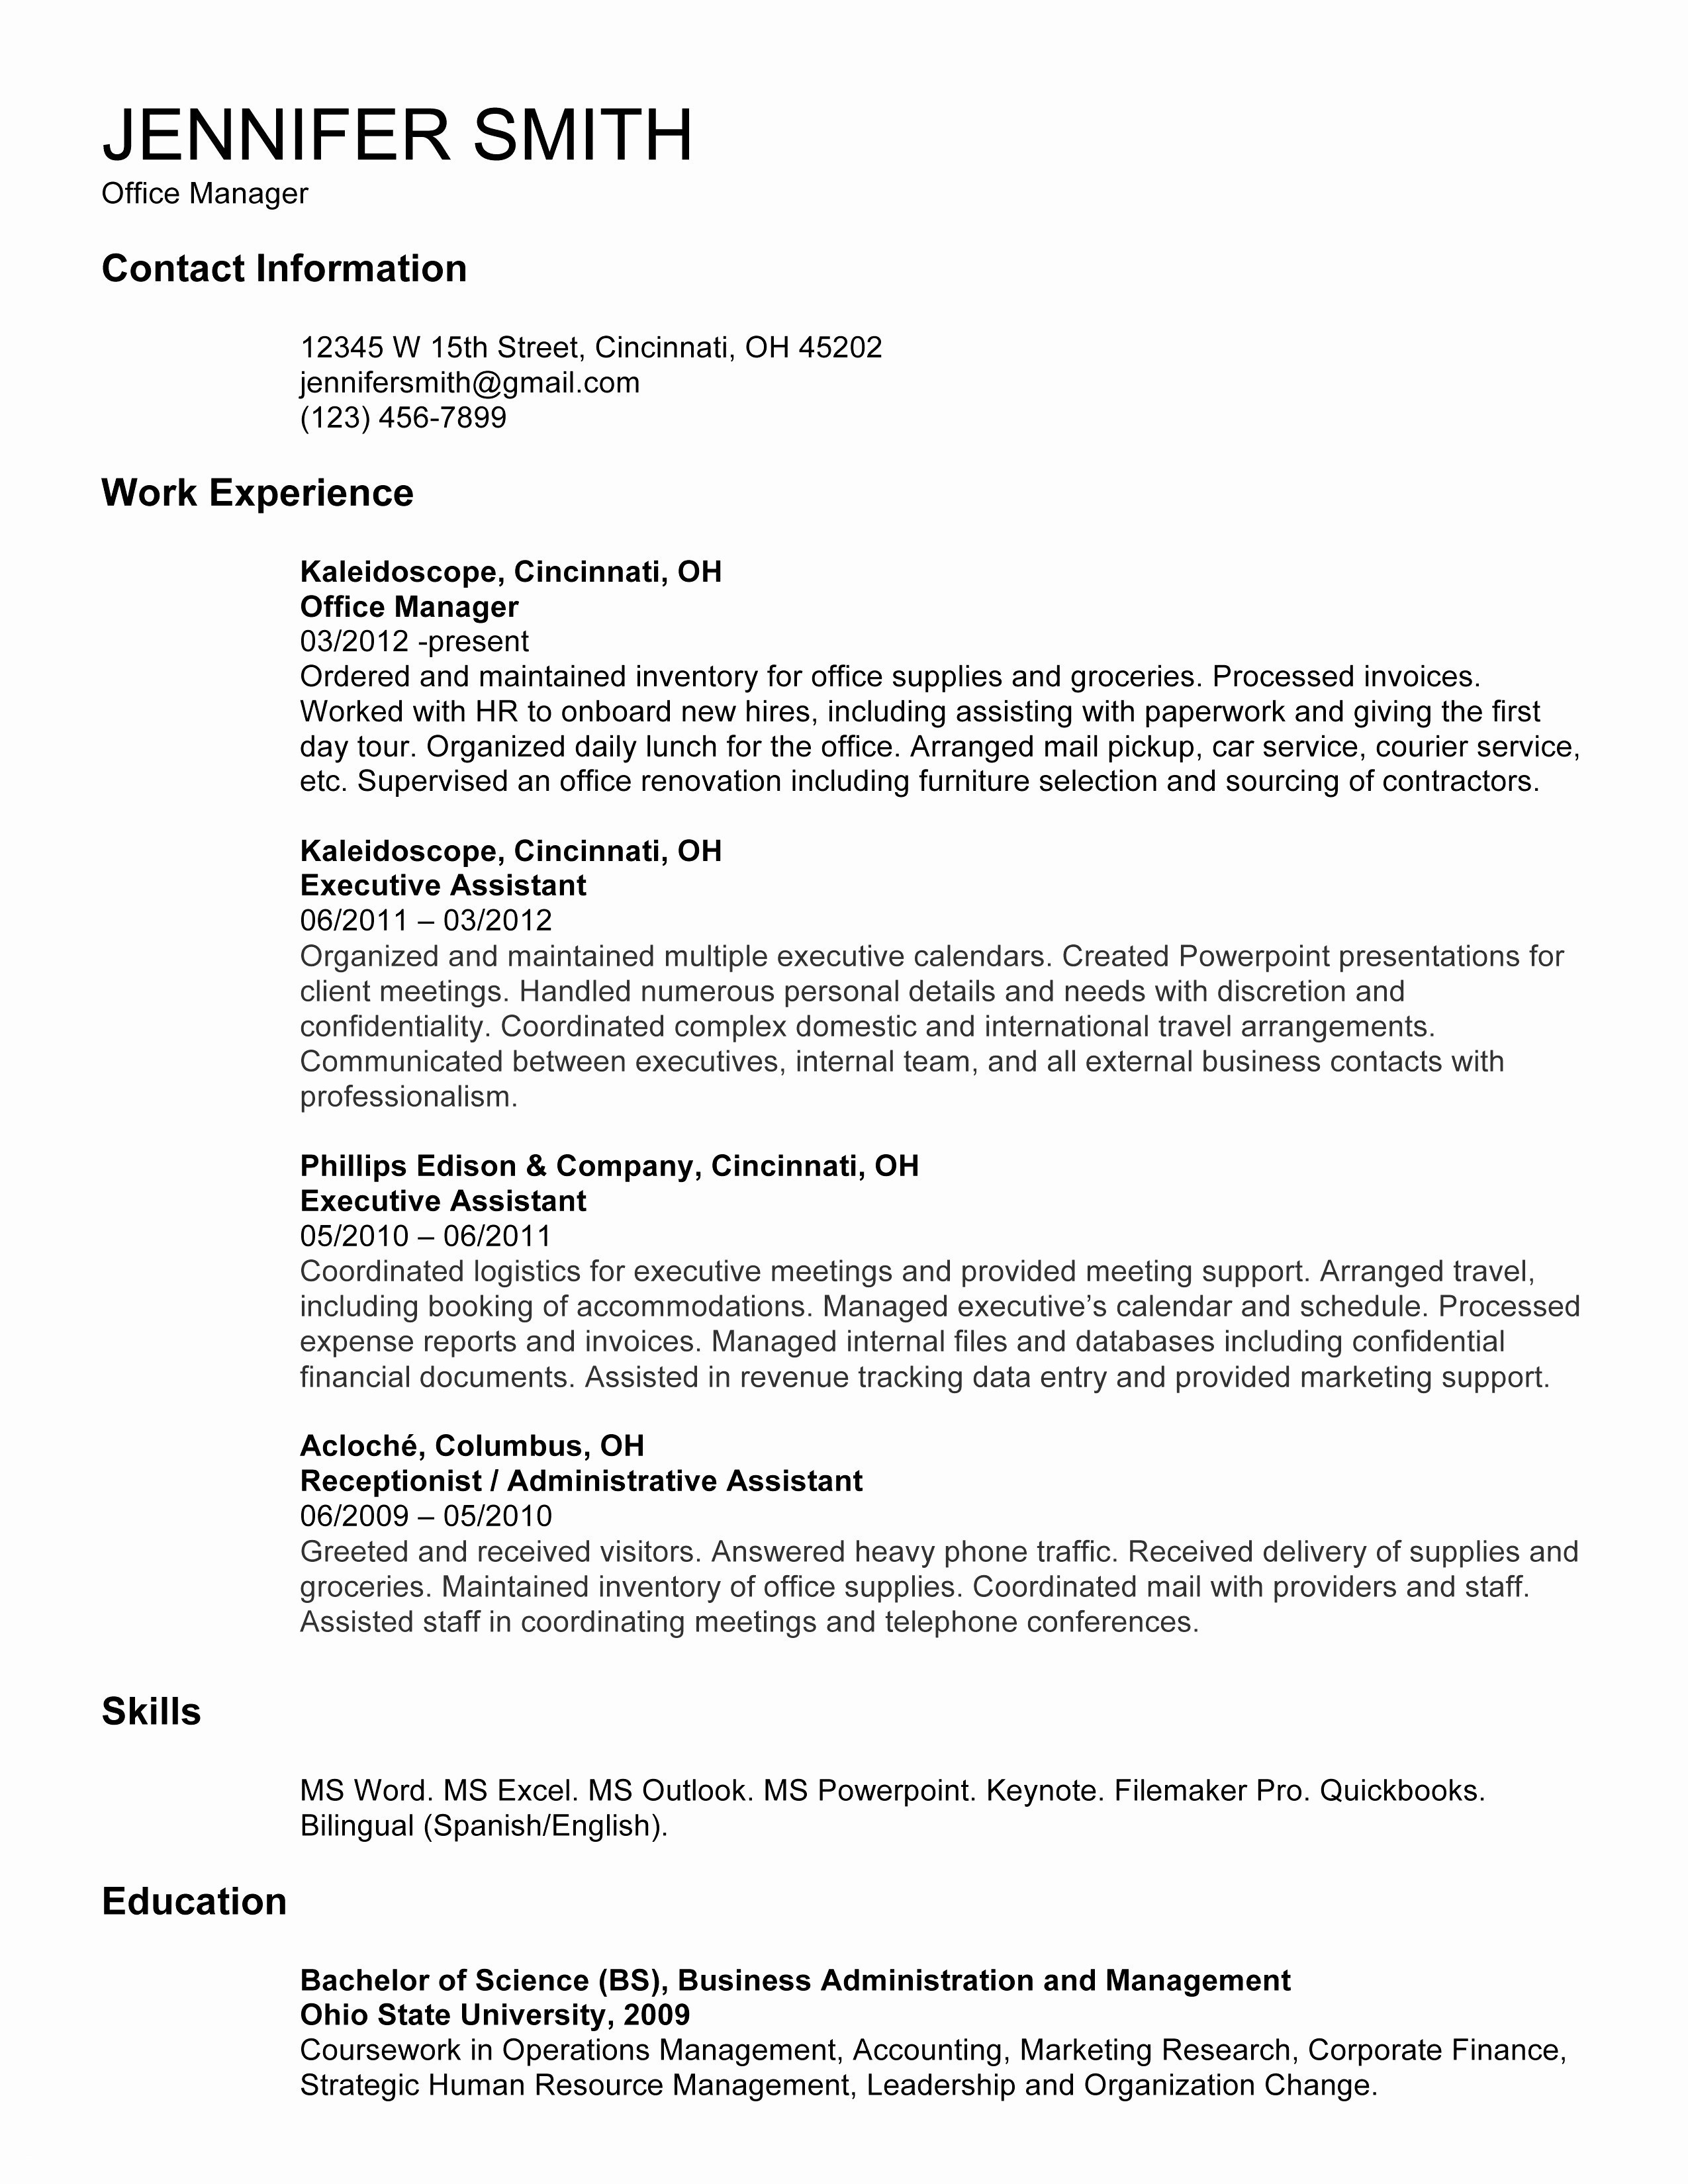 Accounting Professional Summary Examples - Examples Resume Luxury Resume Profile Examples for Receptionist